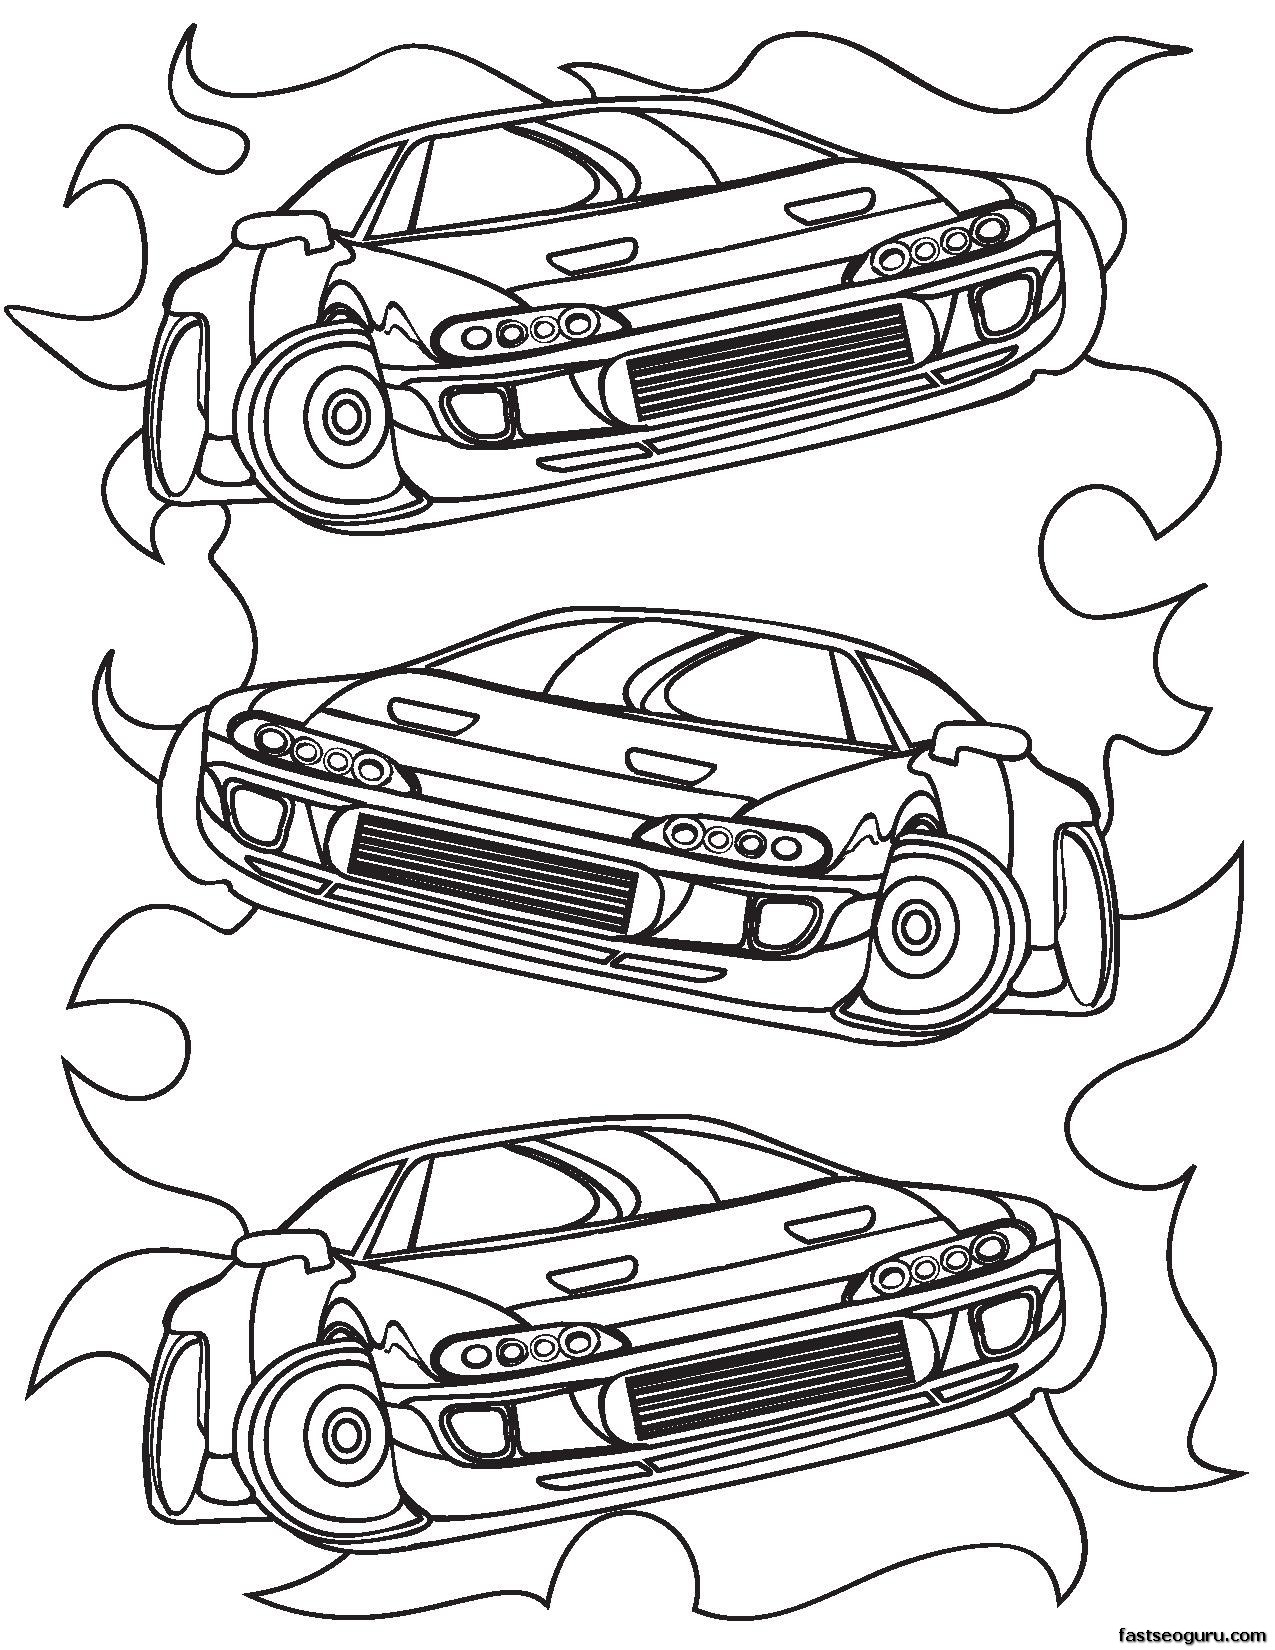 Car Printable Coloring Pages at GetDrawings.com | Free for personal ...